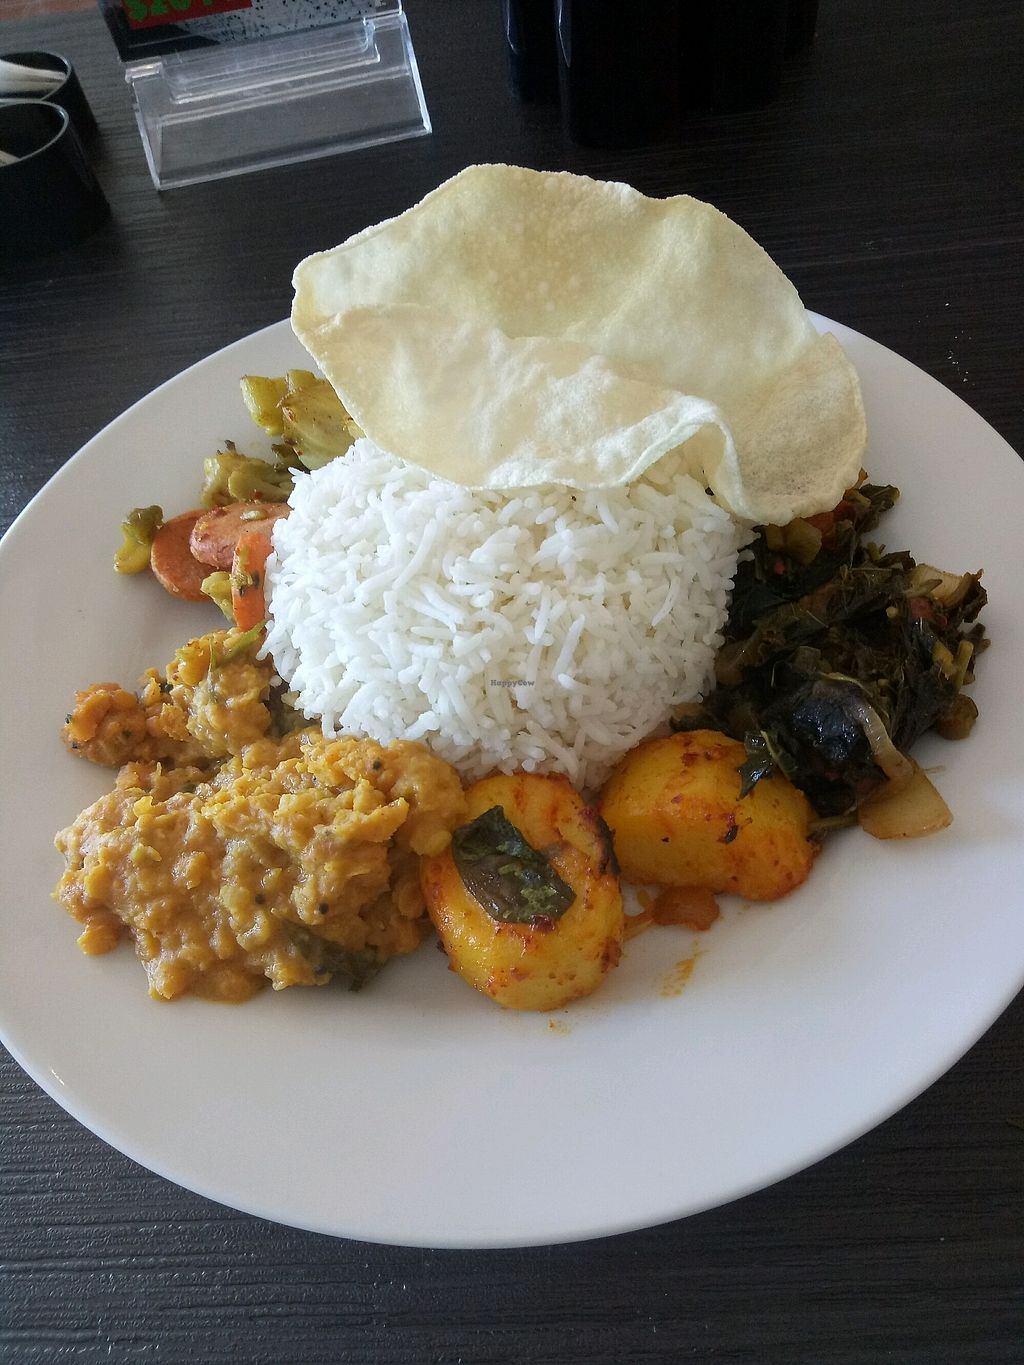 "Photo of Cafe Dinicious  by <a href=""/members/profile/Rebeccapotato"">Rebeccapotato</a> <br/>vegetarian curry option  <br/> January 23, 2018  - <a href='/contact/abuse/image/96603/350030'>Report</a>"